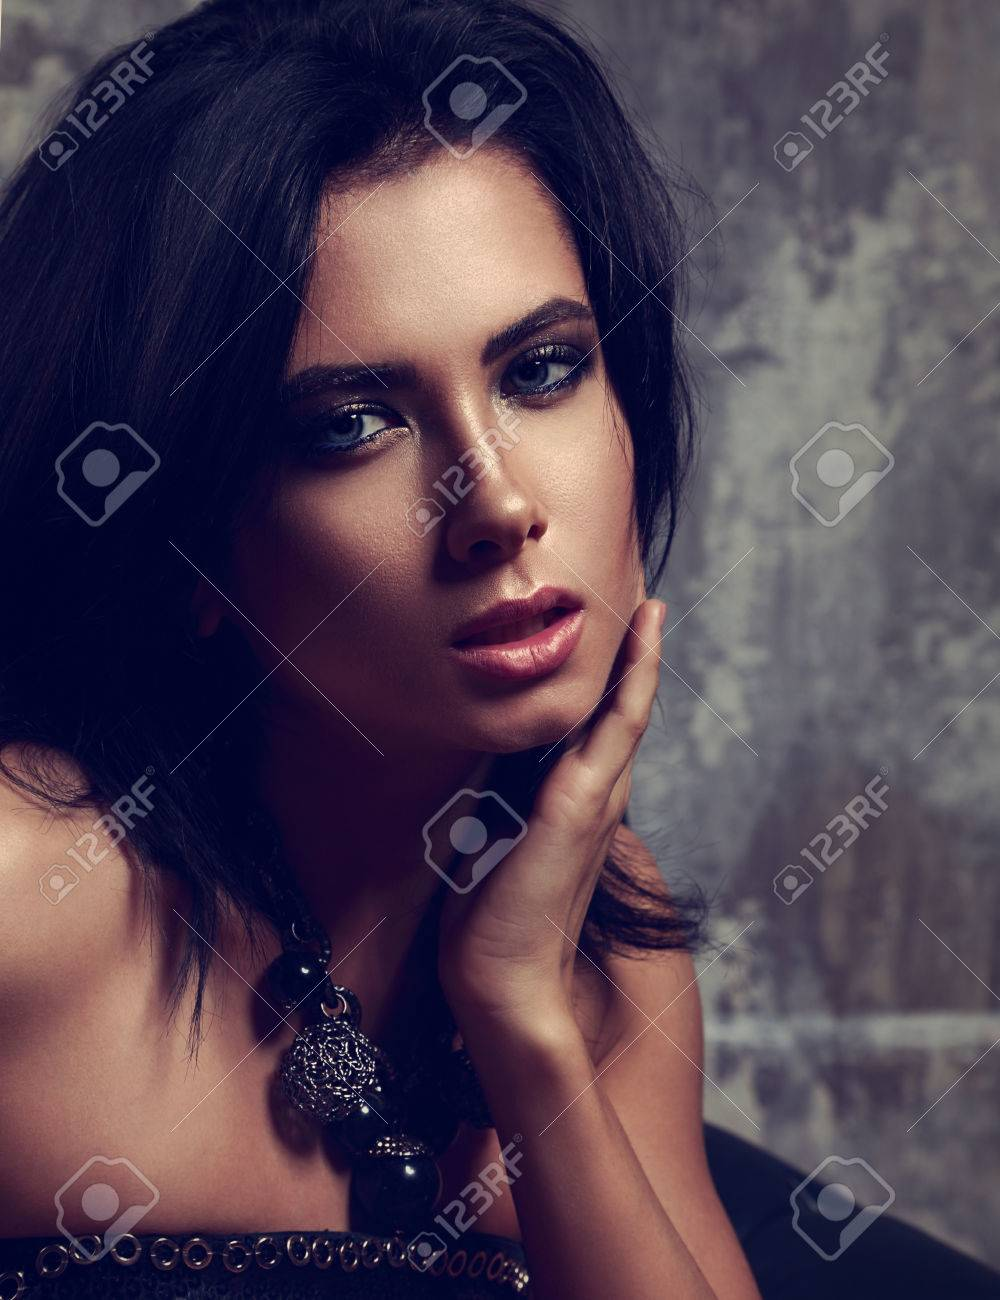 Beautiful Sexy Makeup Woman With Short Black Hair And Fashion